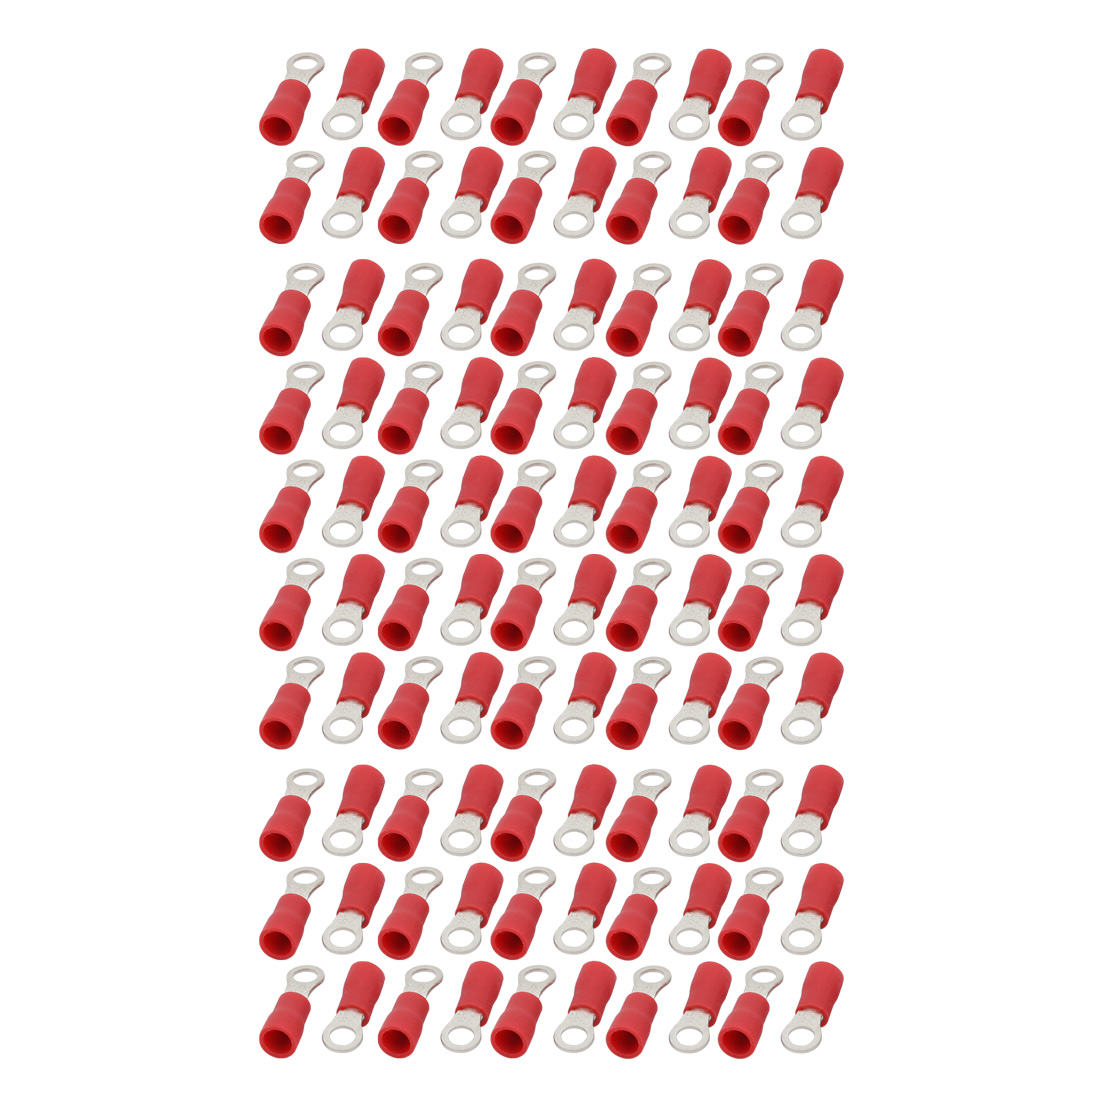 100pcs RV2-4S Pre Insulated Ring Crimp Terminal Connector Red for AWG 16-14 Wire